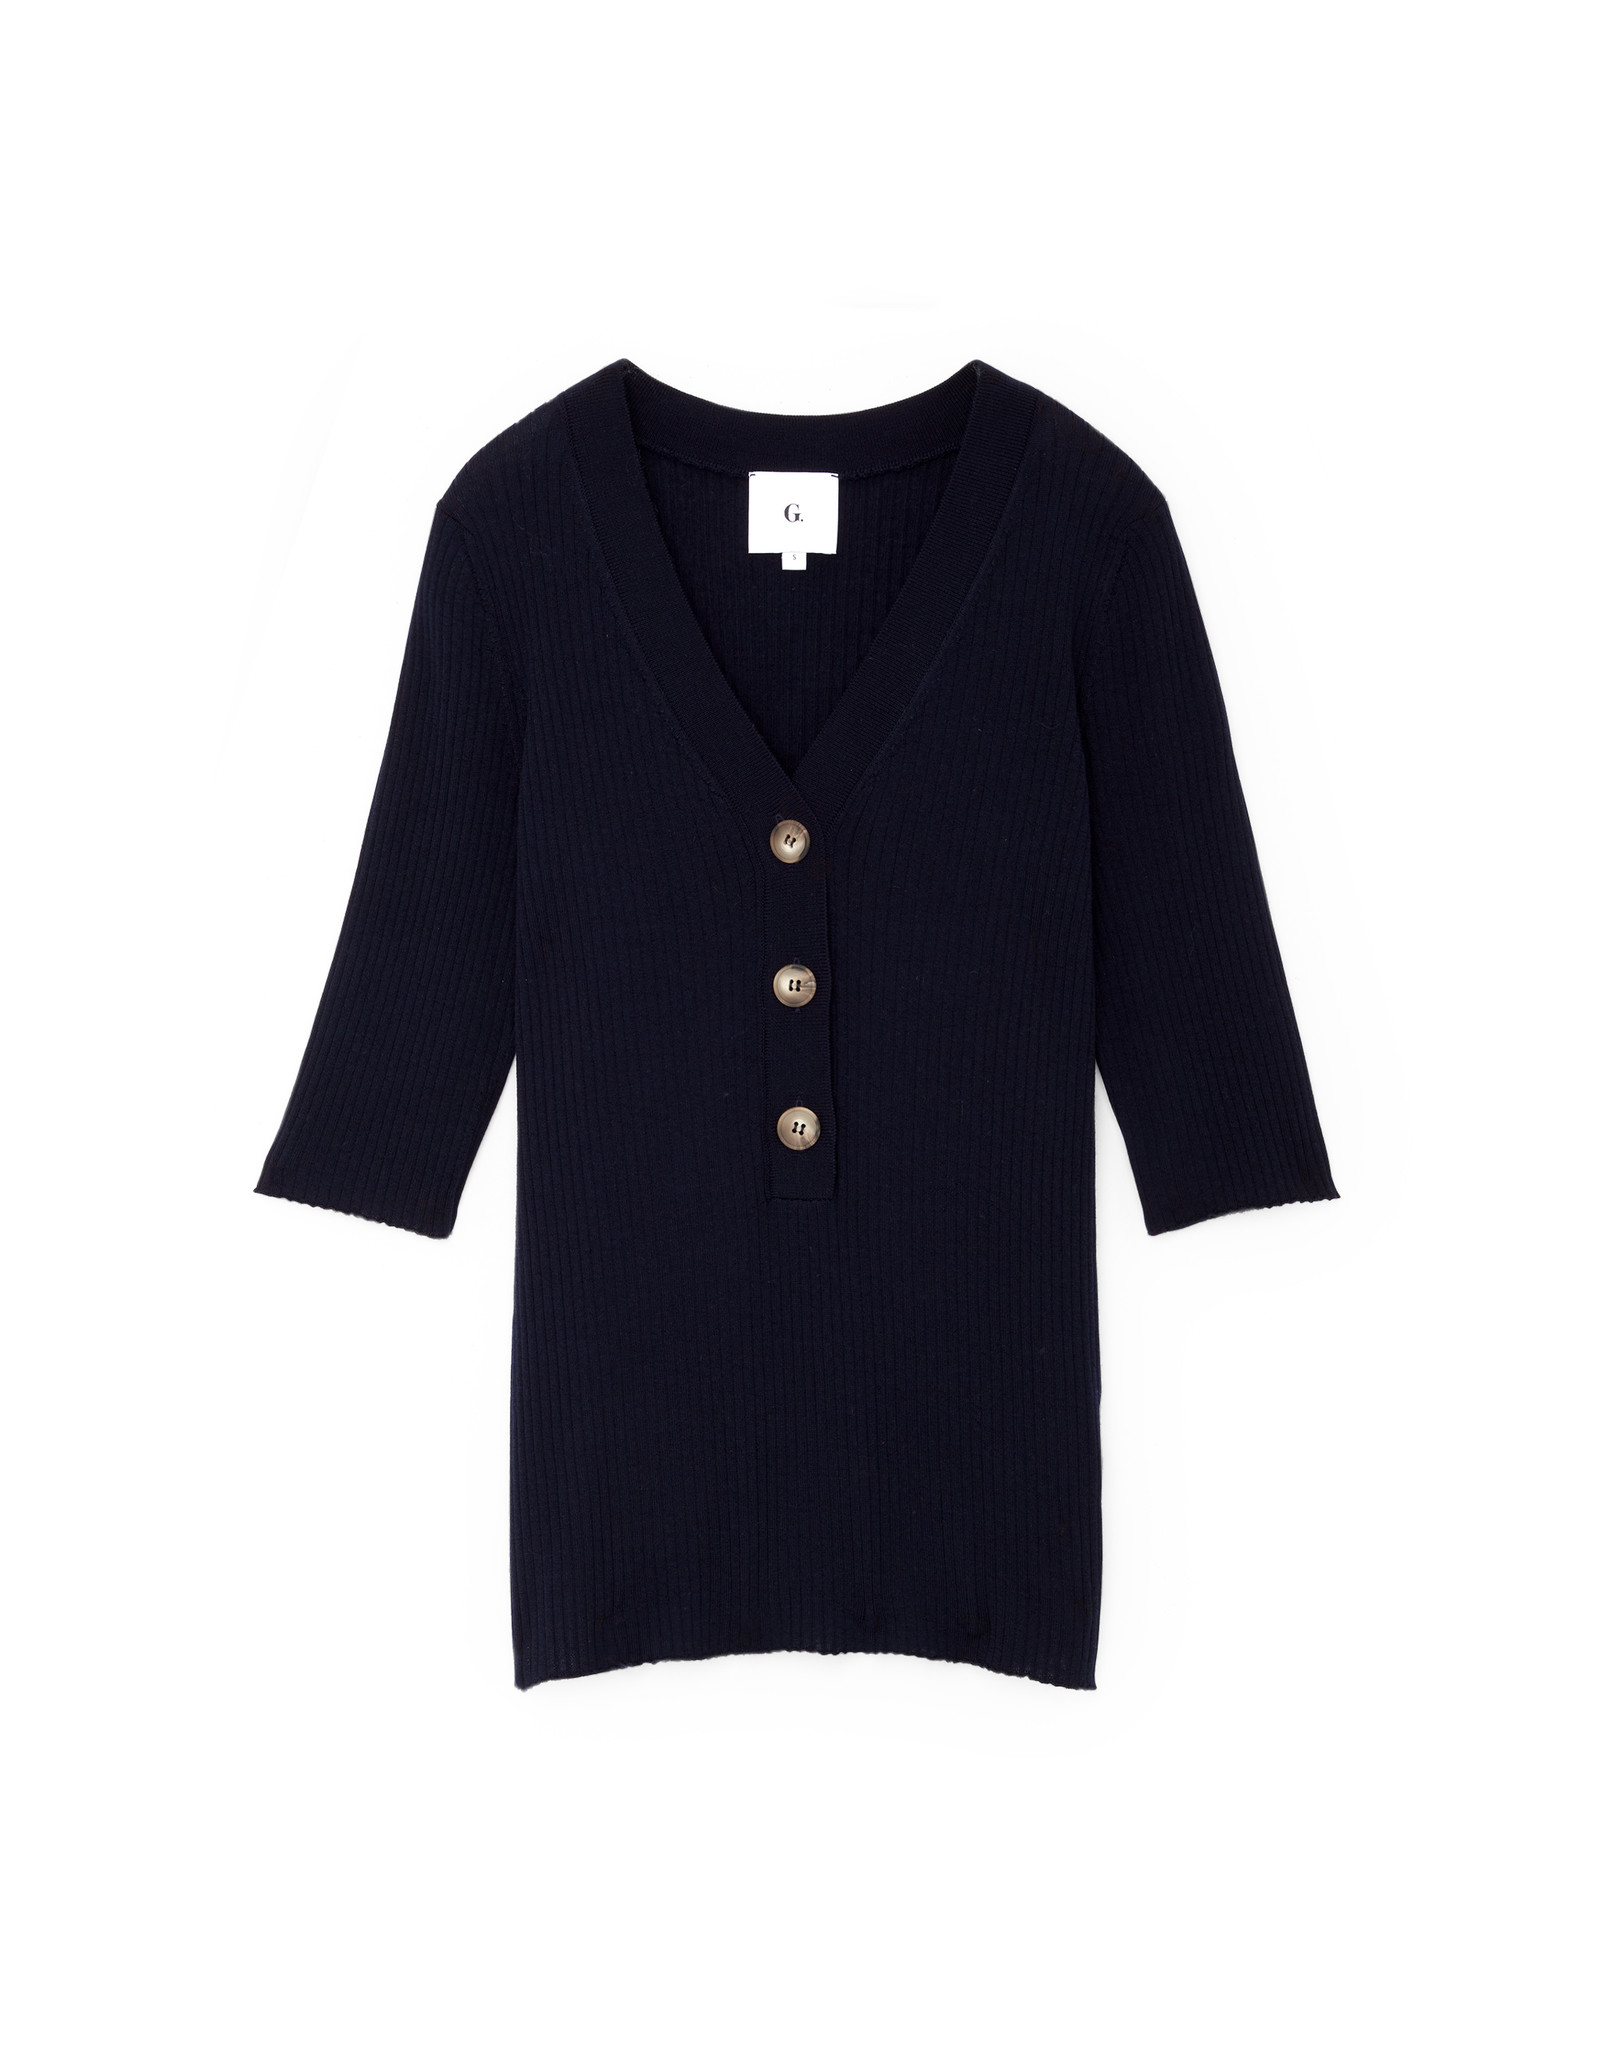 G. Label G. Label Nate Mid-Sleeve Rib Henley (Color: Navy, Size: XS)